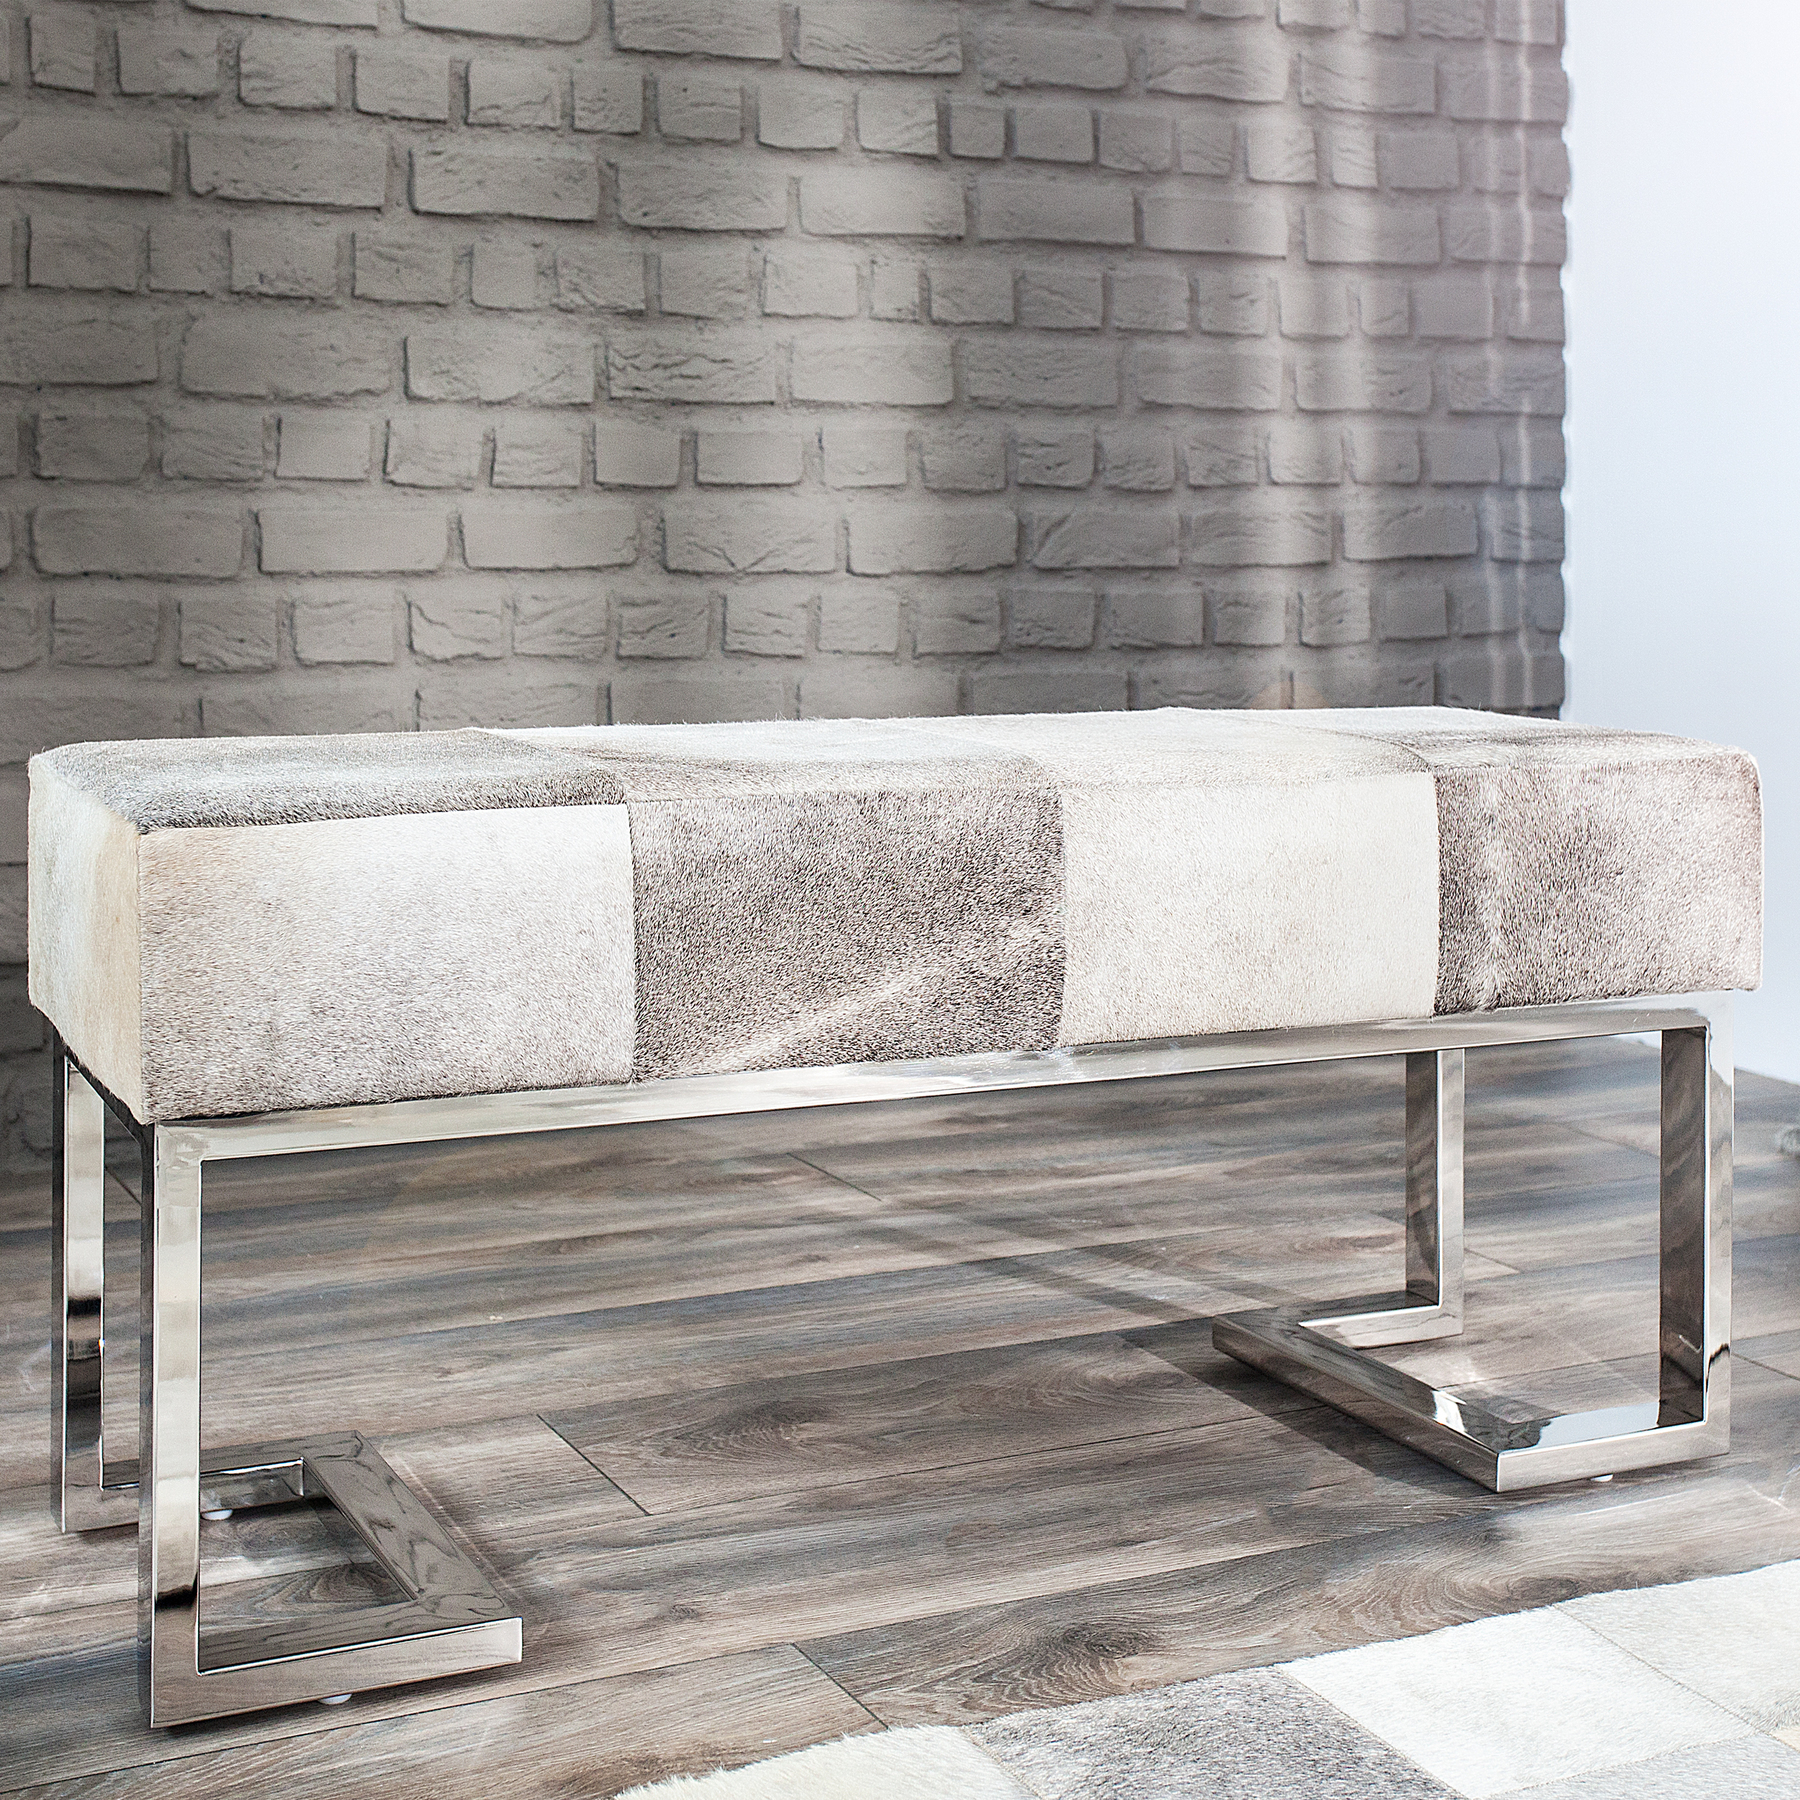 Moderne kuhfell sitzbank patchwork rodeo collection 110cm grau ebay Riess ambiente sofa